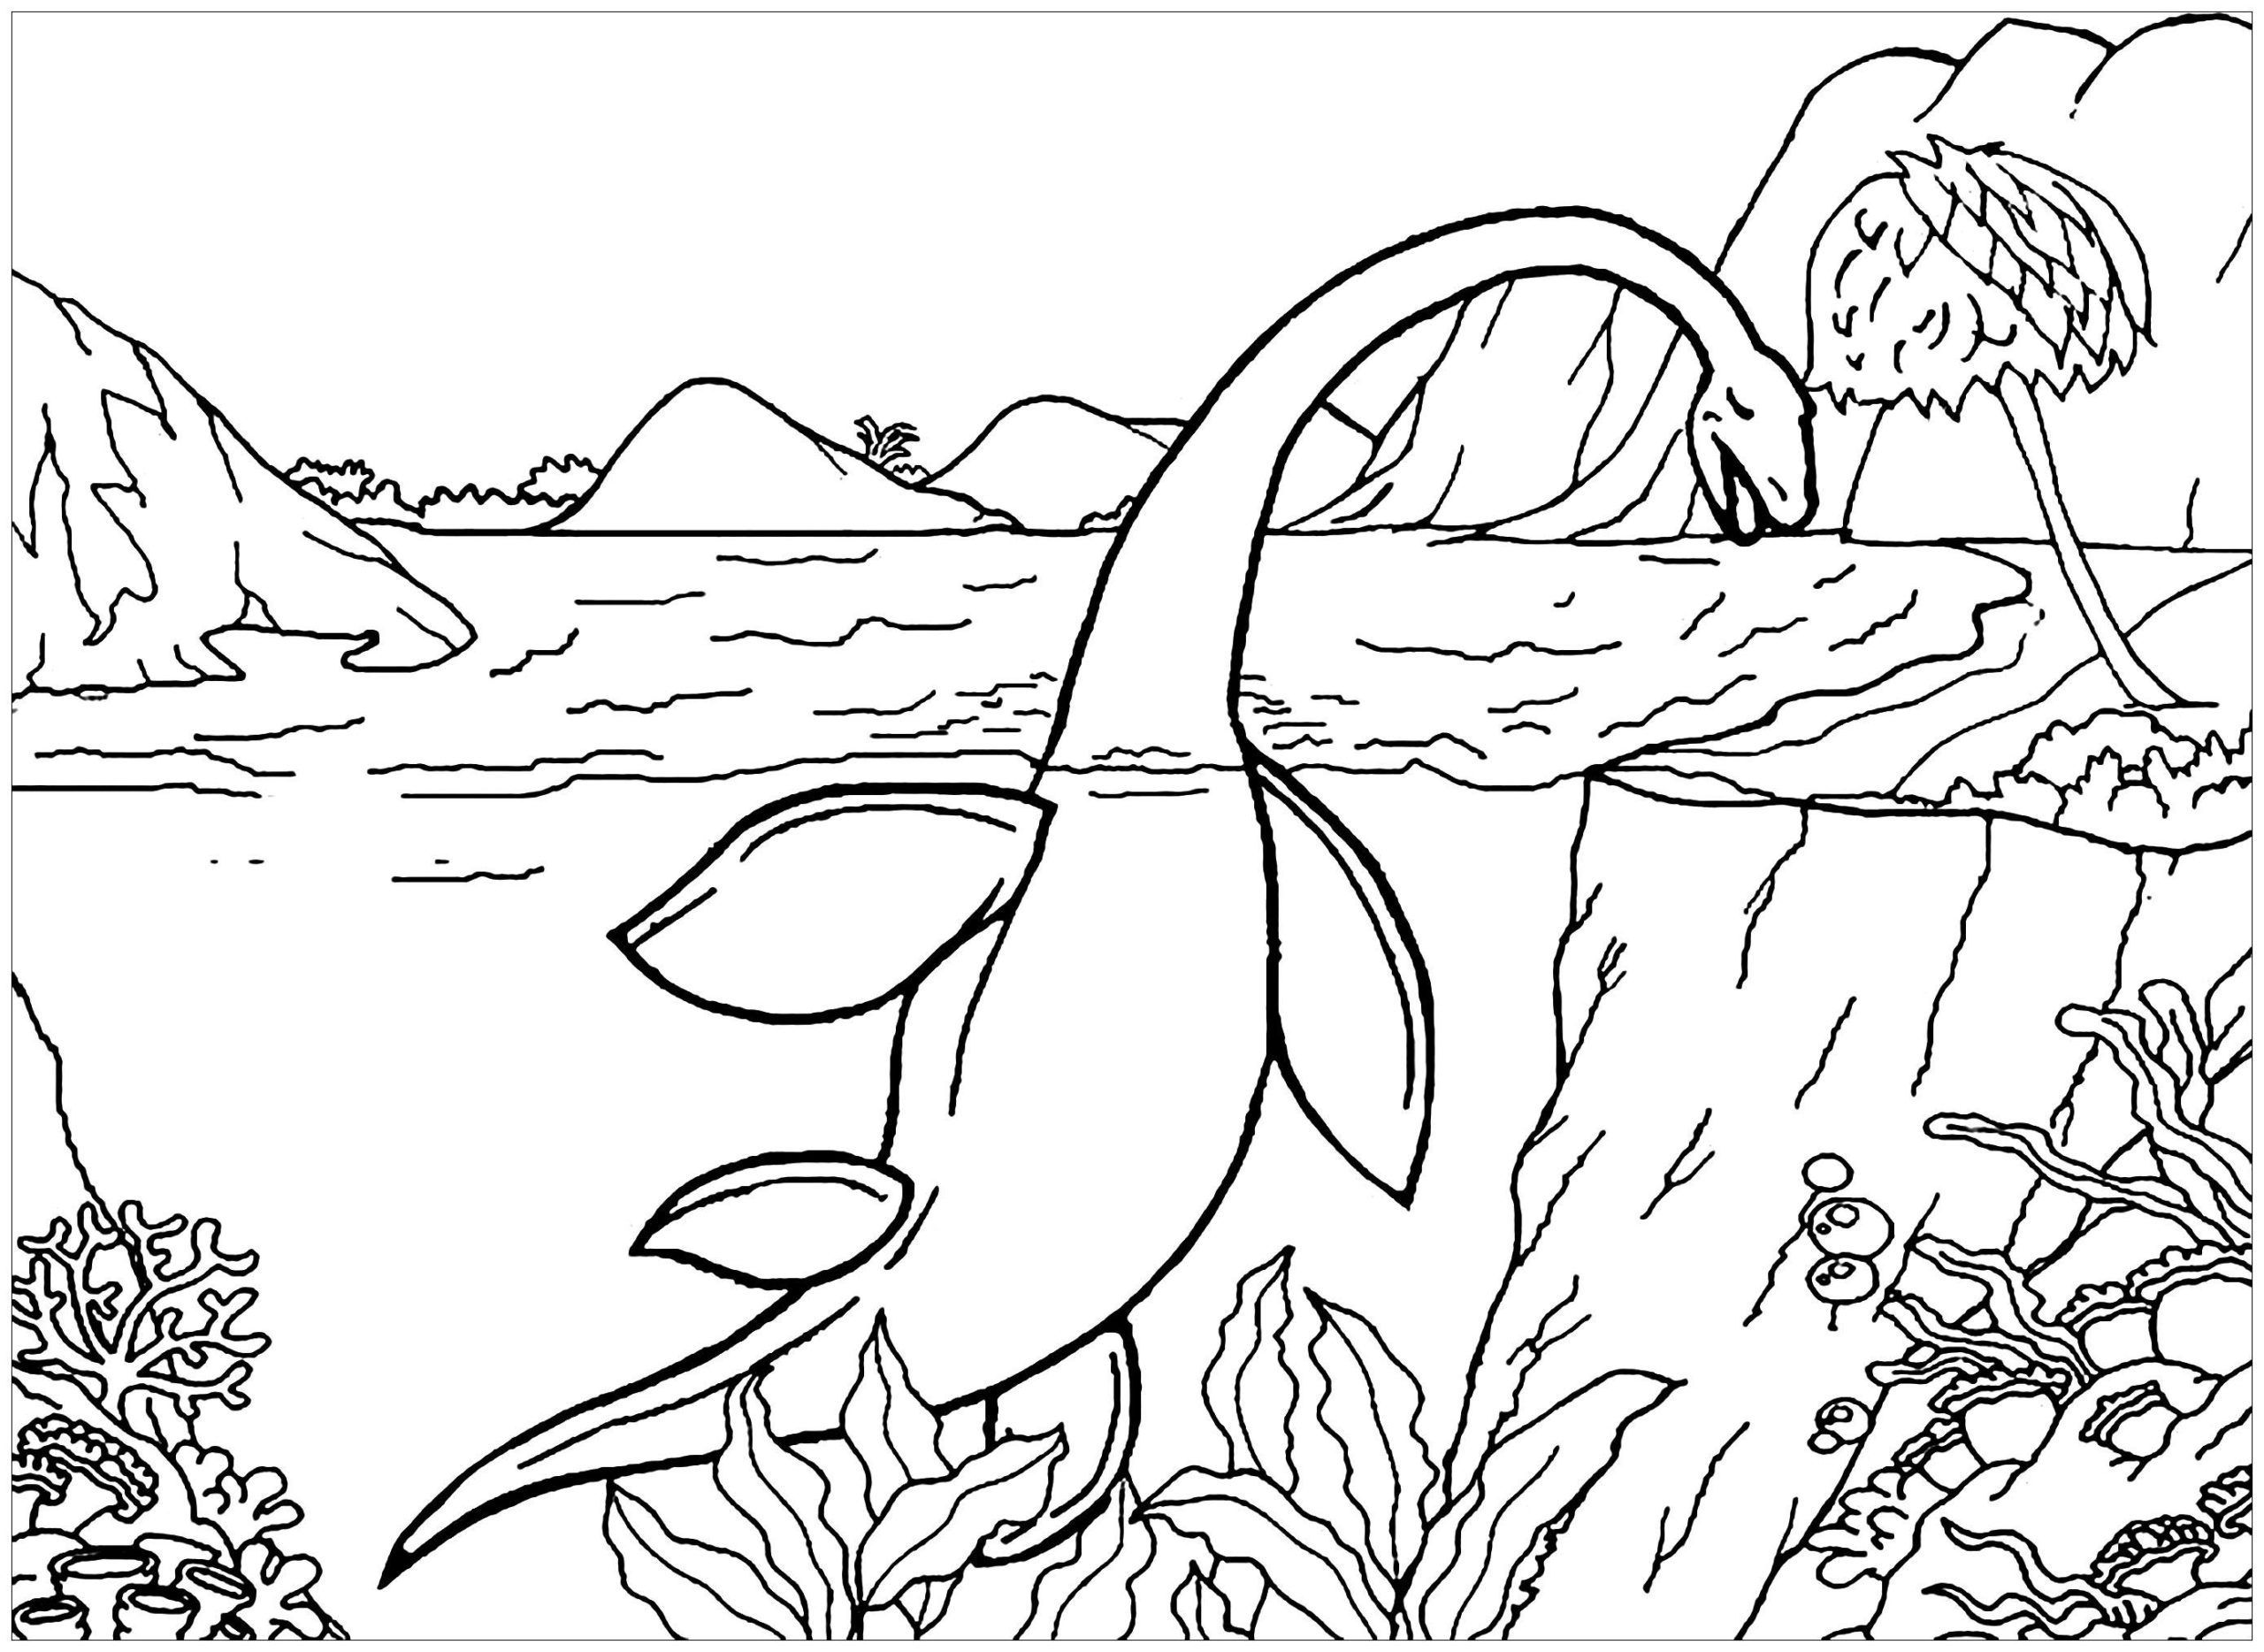 Free Printable Dinosaur Coloring Pages For Preschoolers 3 In 2020 Dinosaur Coloring Pages Dinosaur Coloring Princess Coloring Pages